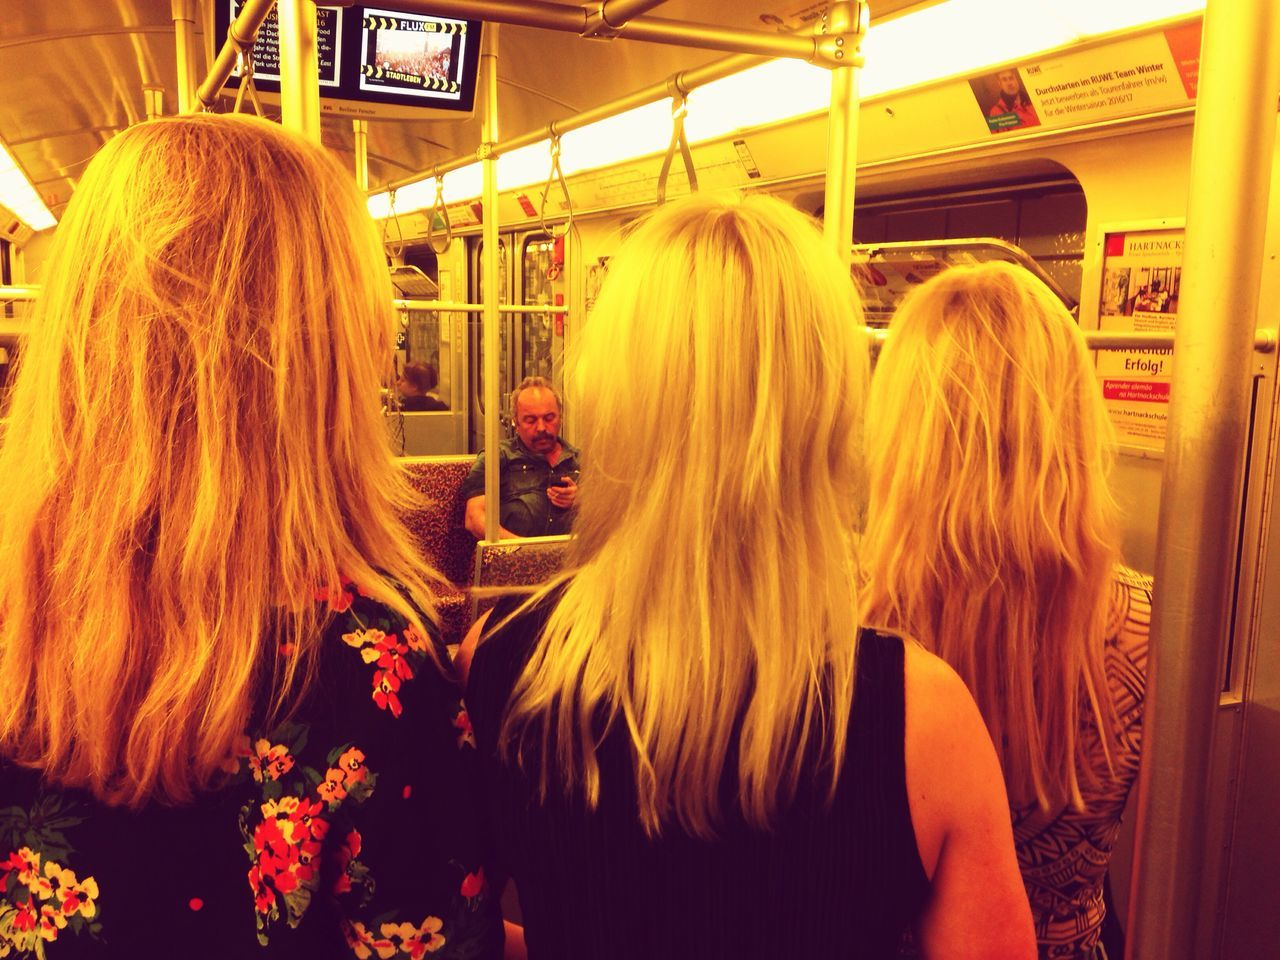 Three shades of blond - and a matching pole. Rear View Blond Hair Medium-length Hair Bonding Young Women Commuting Matching Friendship Goals Ubahn Berlin Dutch Girls Togetherness Public Transportation Standing